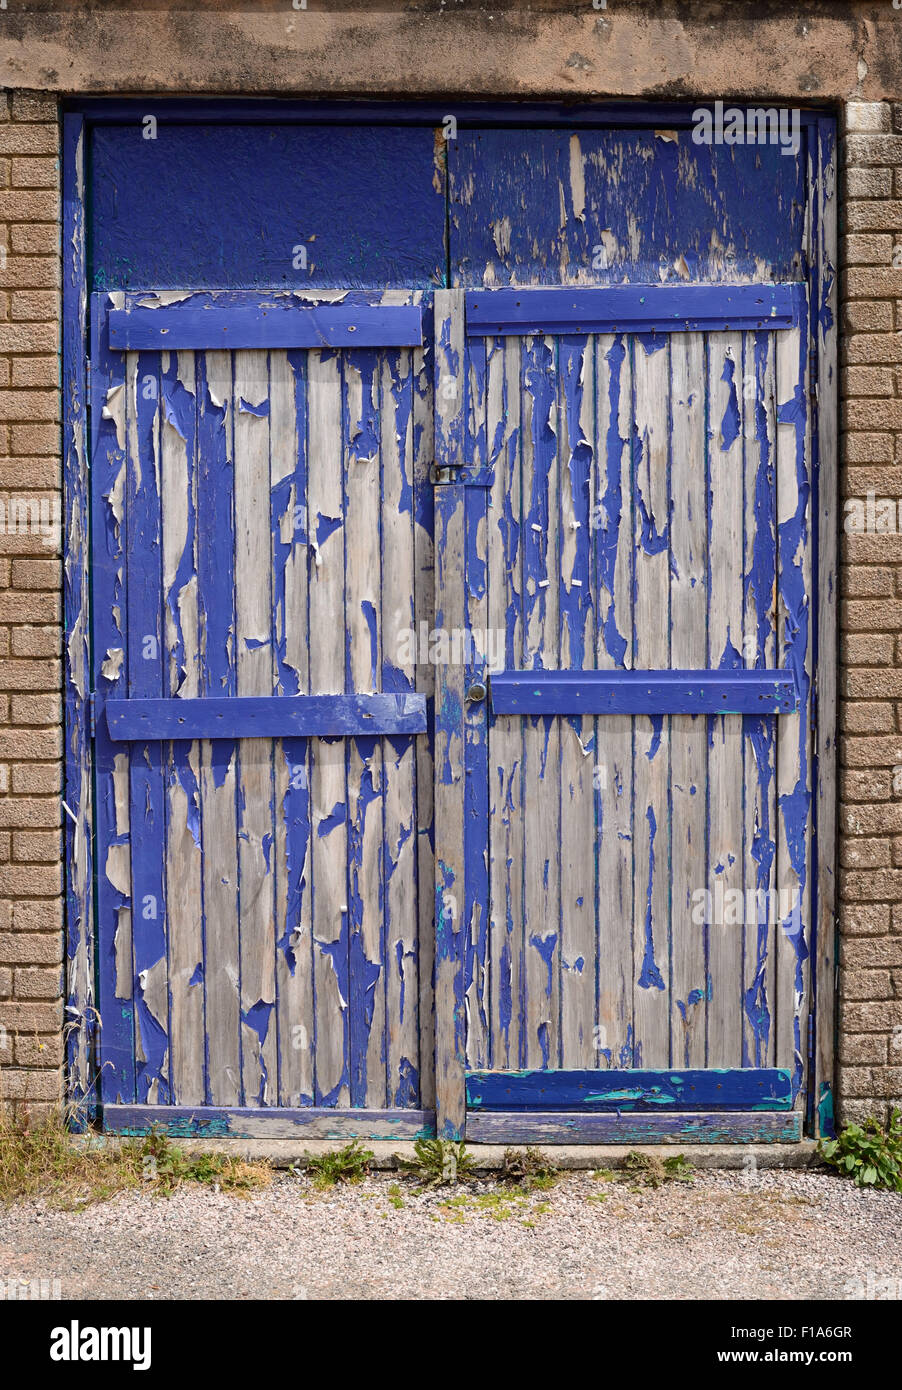 Double doors in need of some repair. - Stock Image